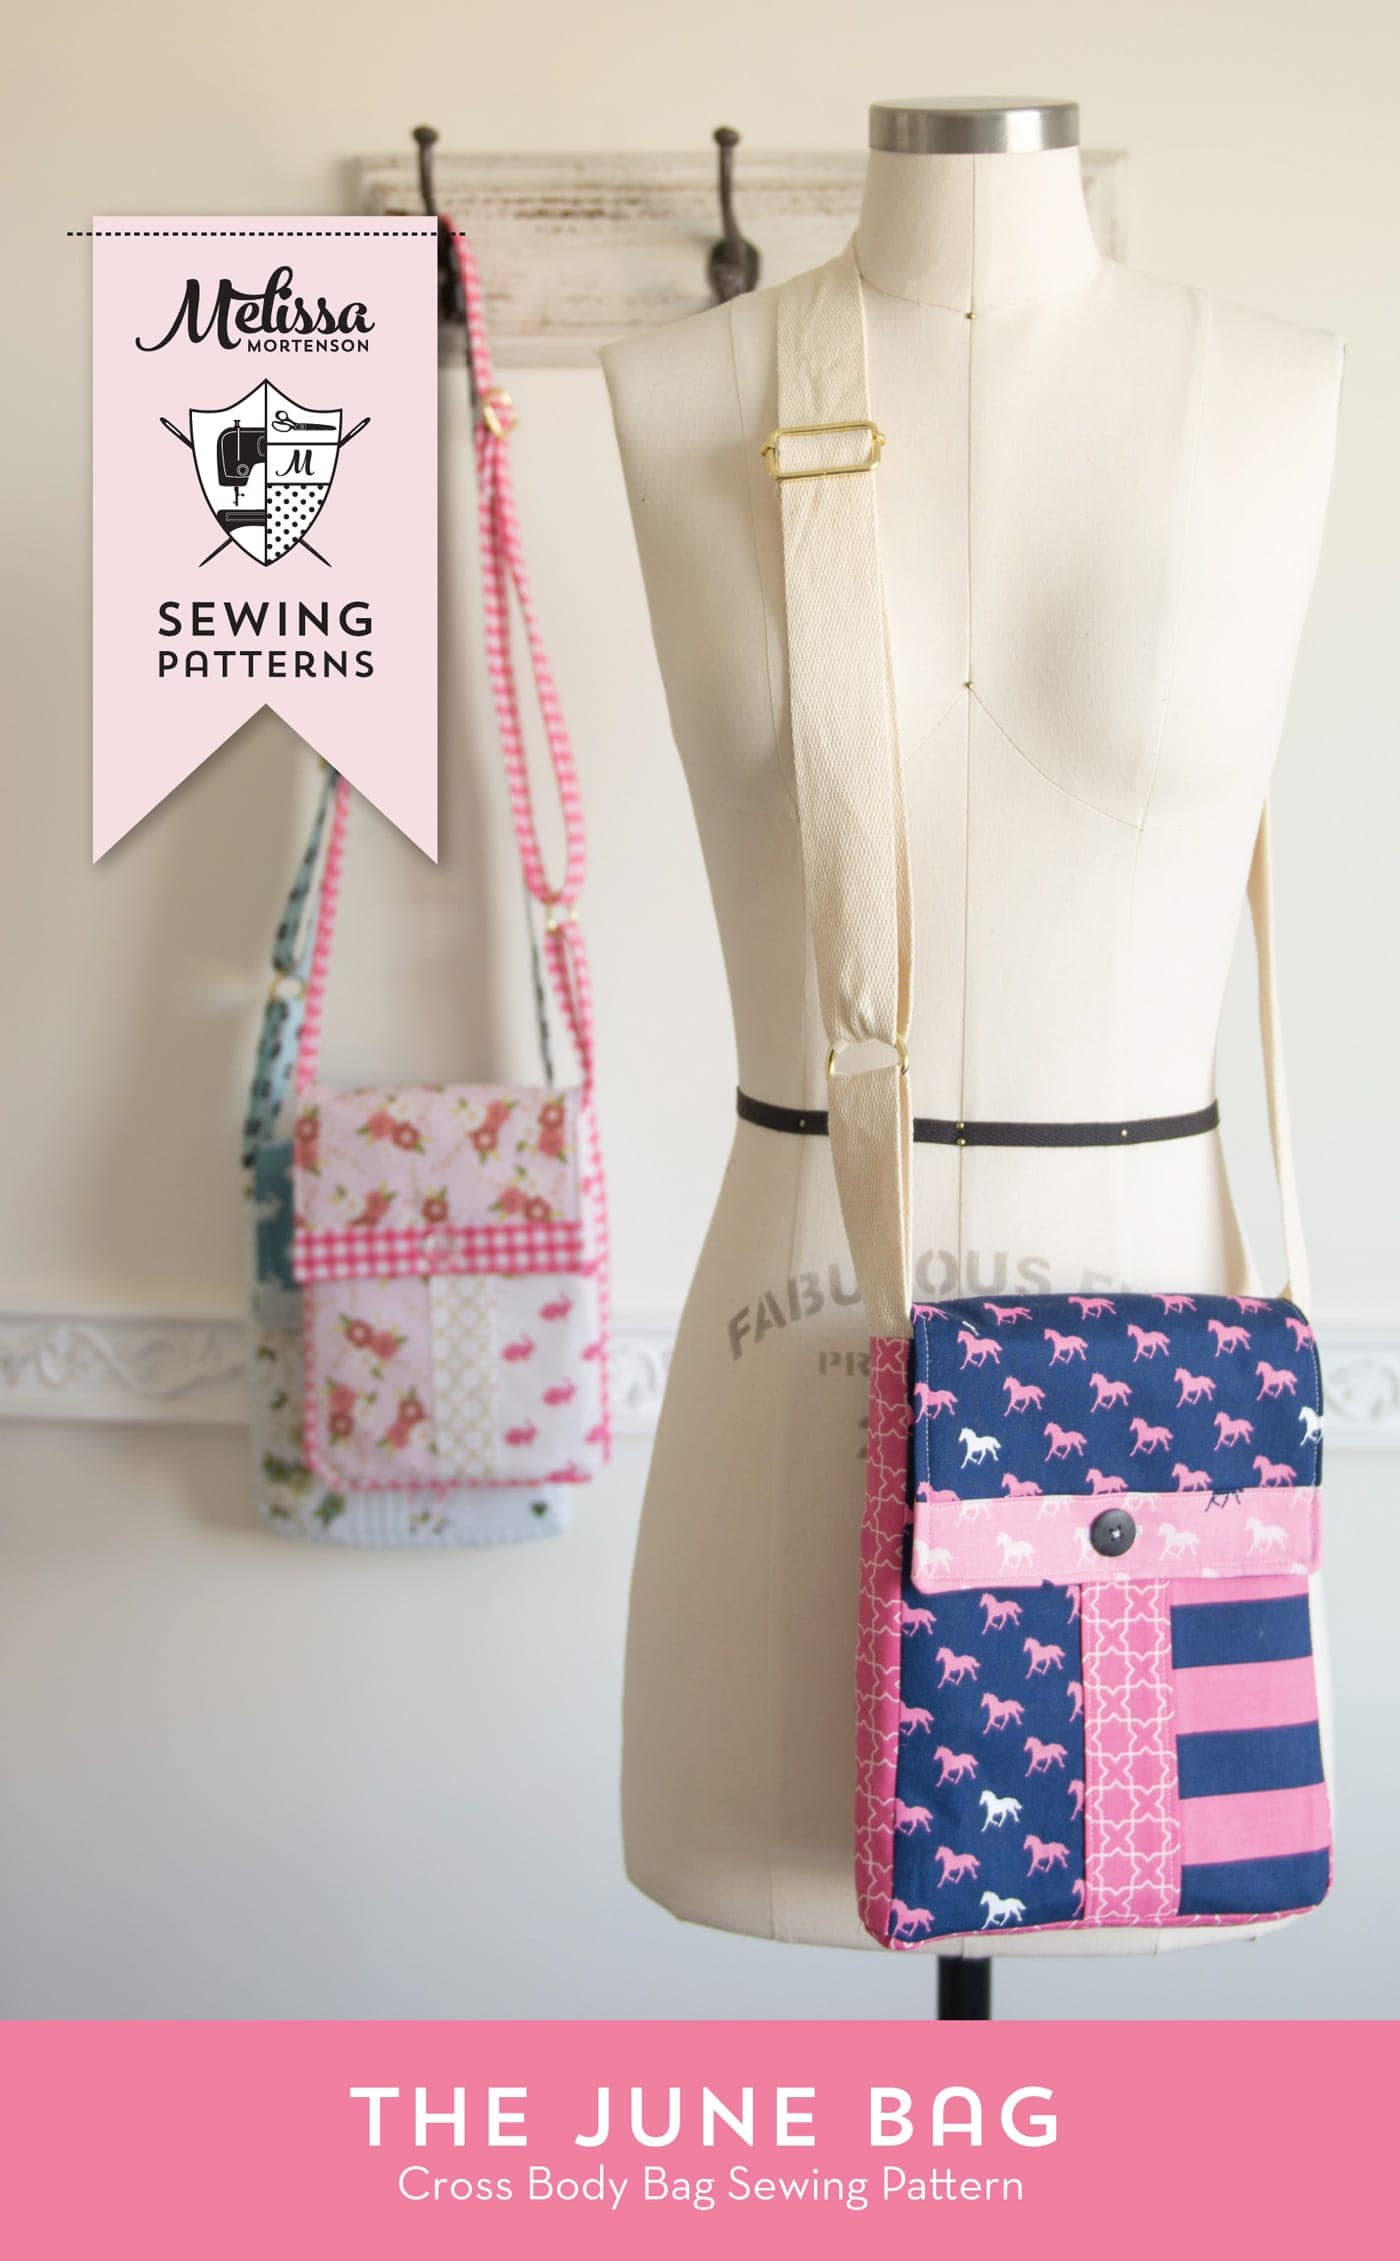 chair bags for school pattern director covers walmart cross body bag sewing the polka dot